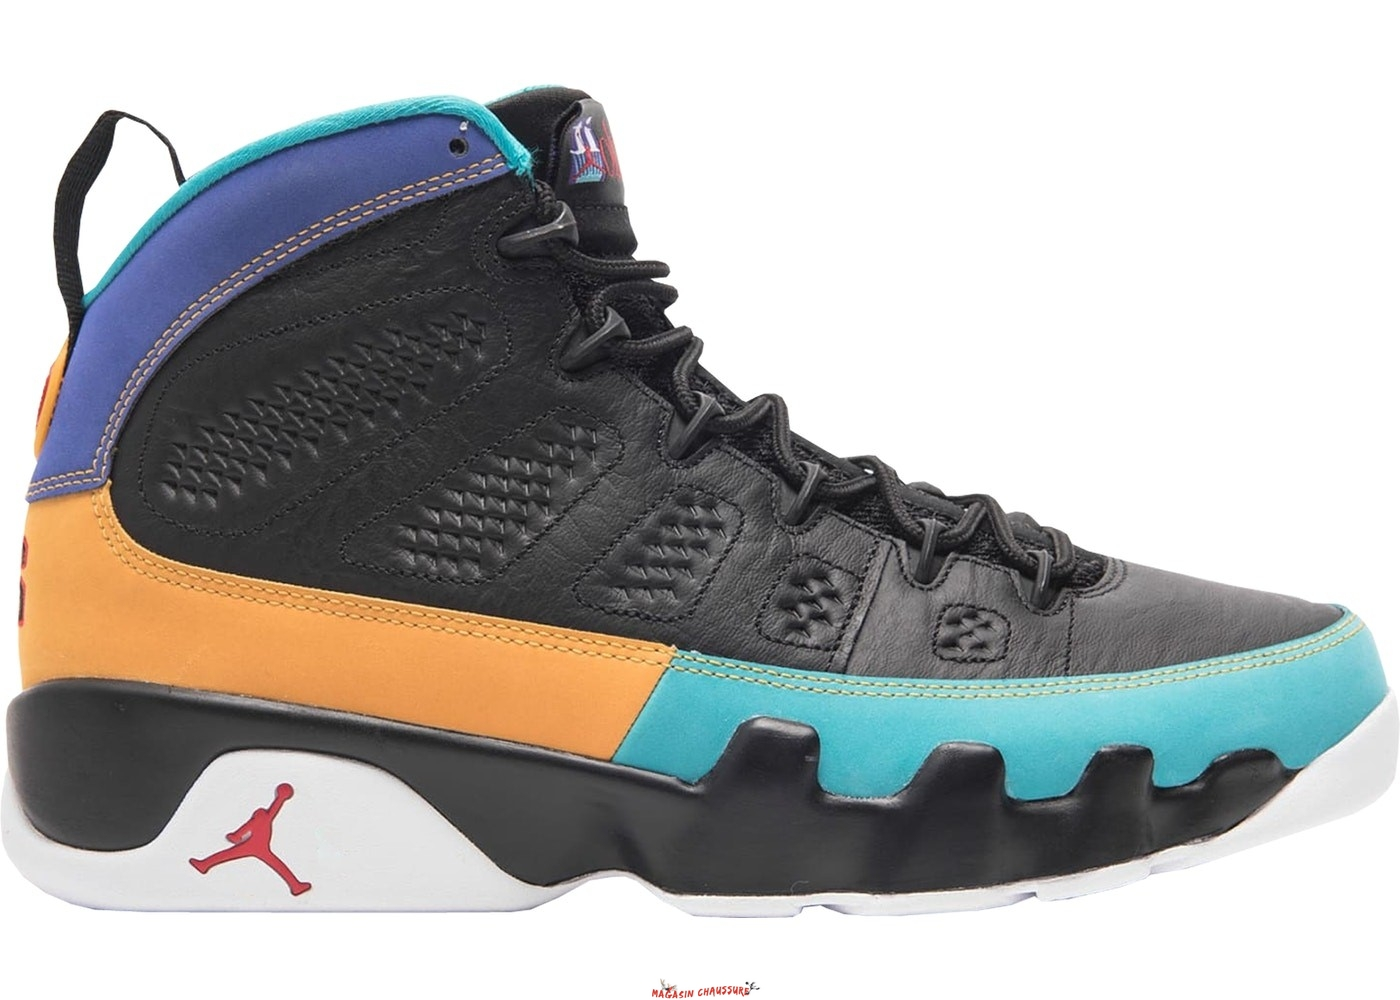 Air Jordan 9 - Homme Retro Dream It Do It Noir (302370-065) Chaussure de Basket